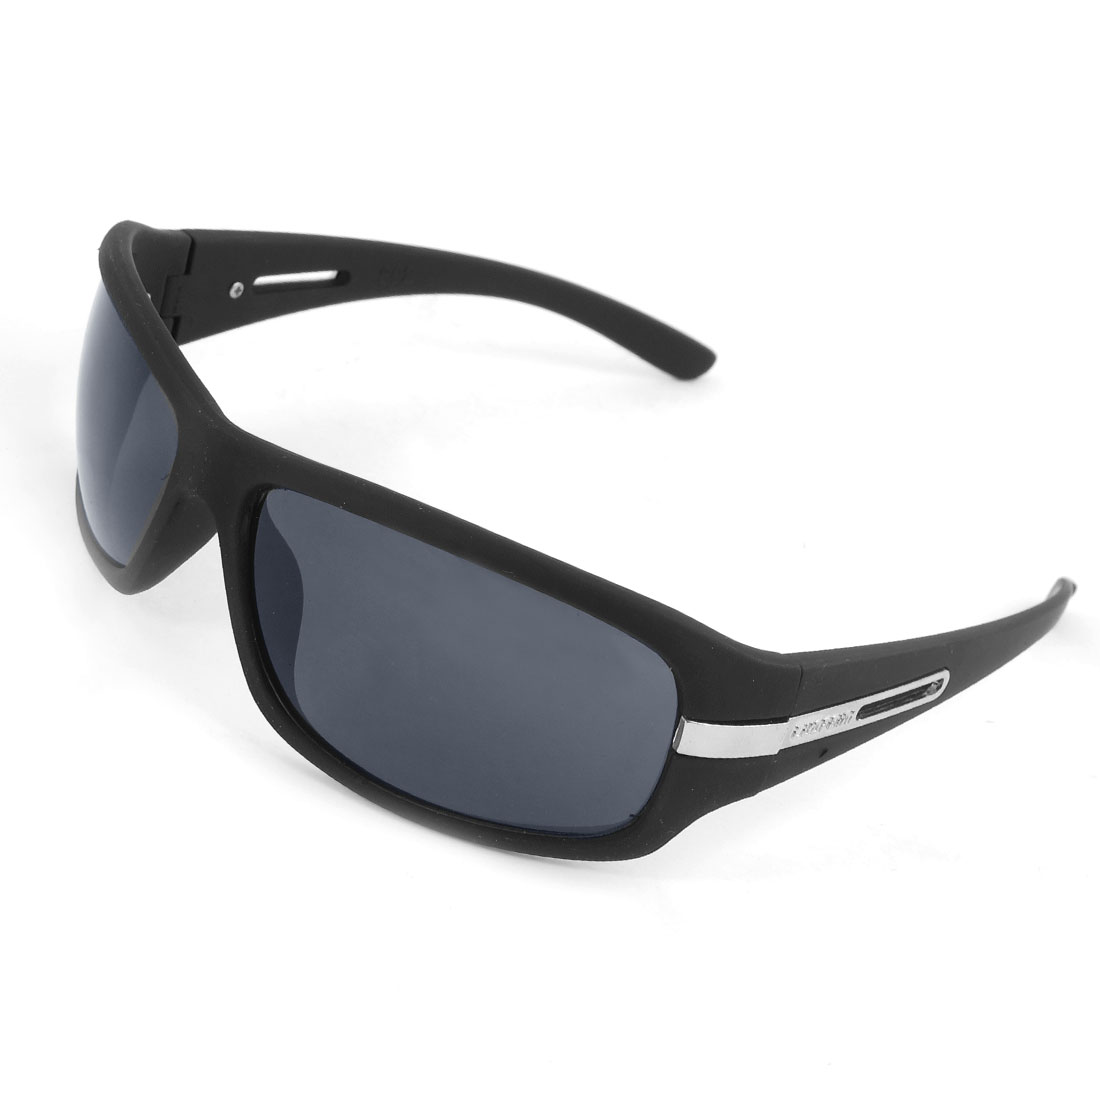 Unisex Black Hollow out Arms Plastic Full Frame Eyewear Sunglasses